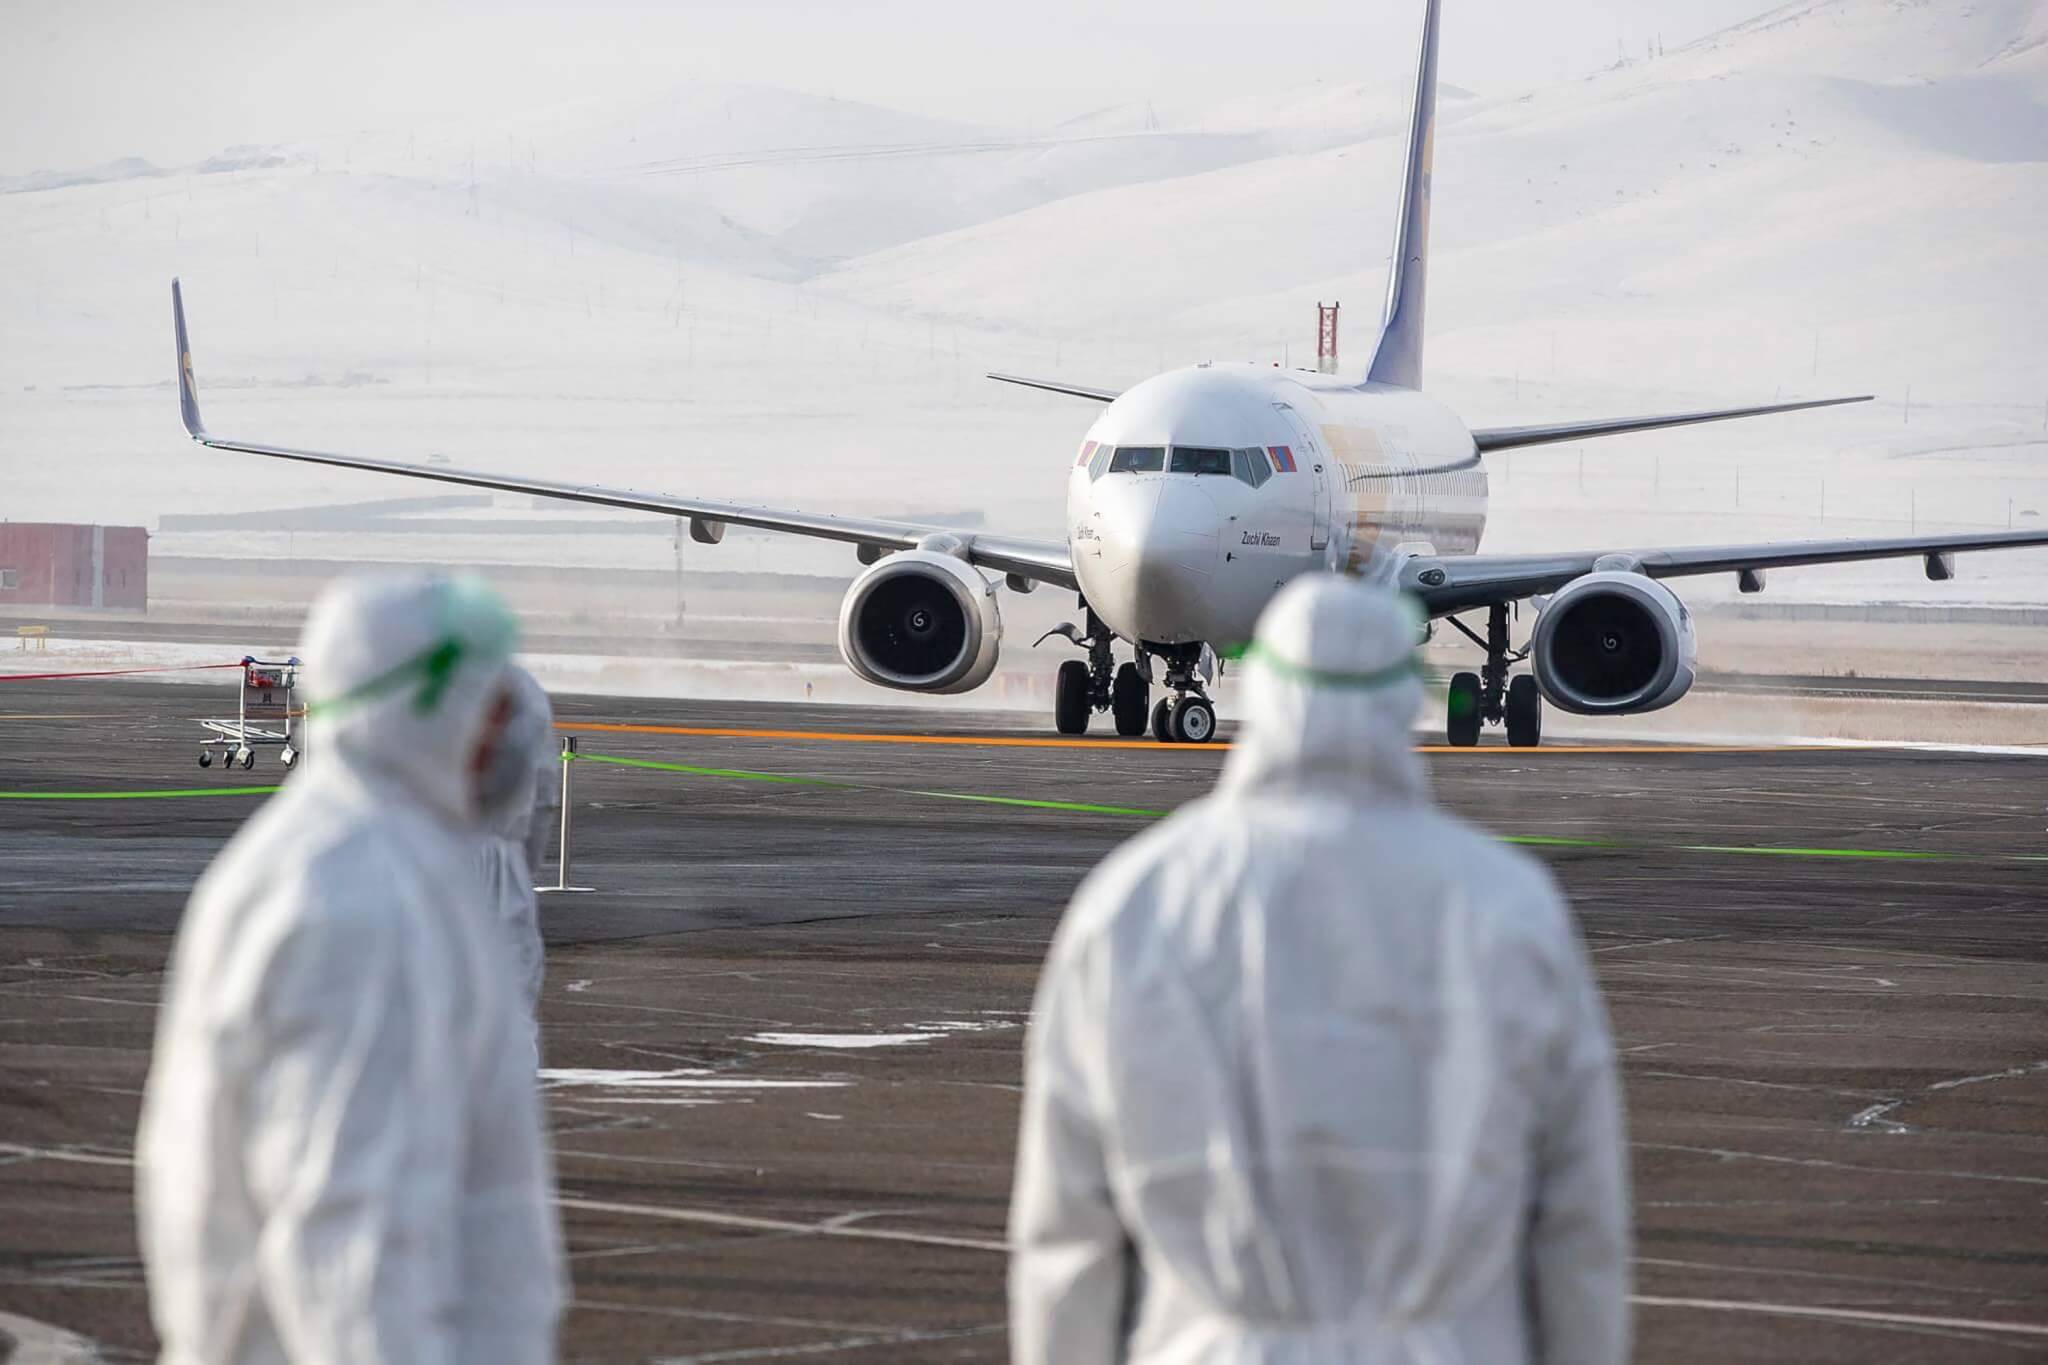 IATA: More governments need to step up support for airlines